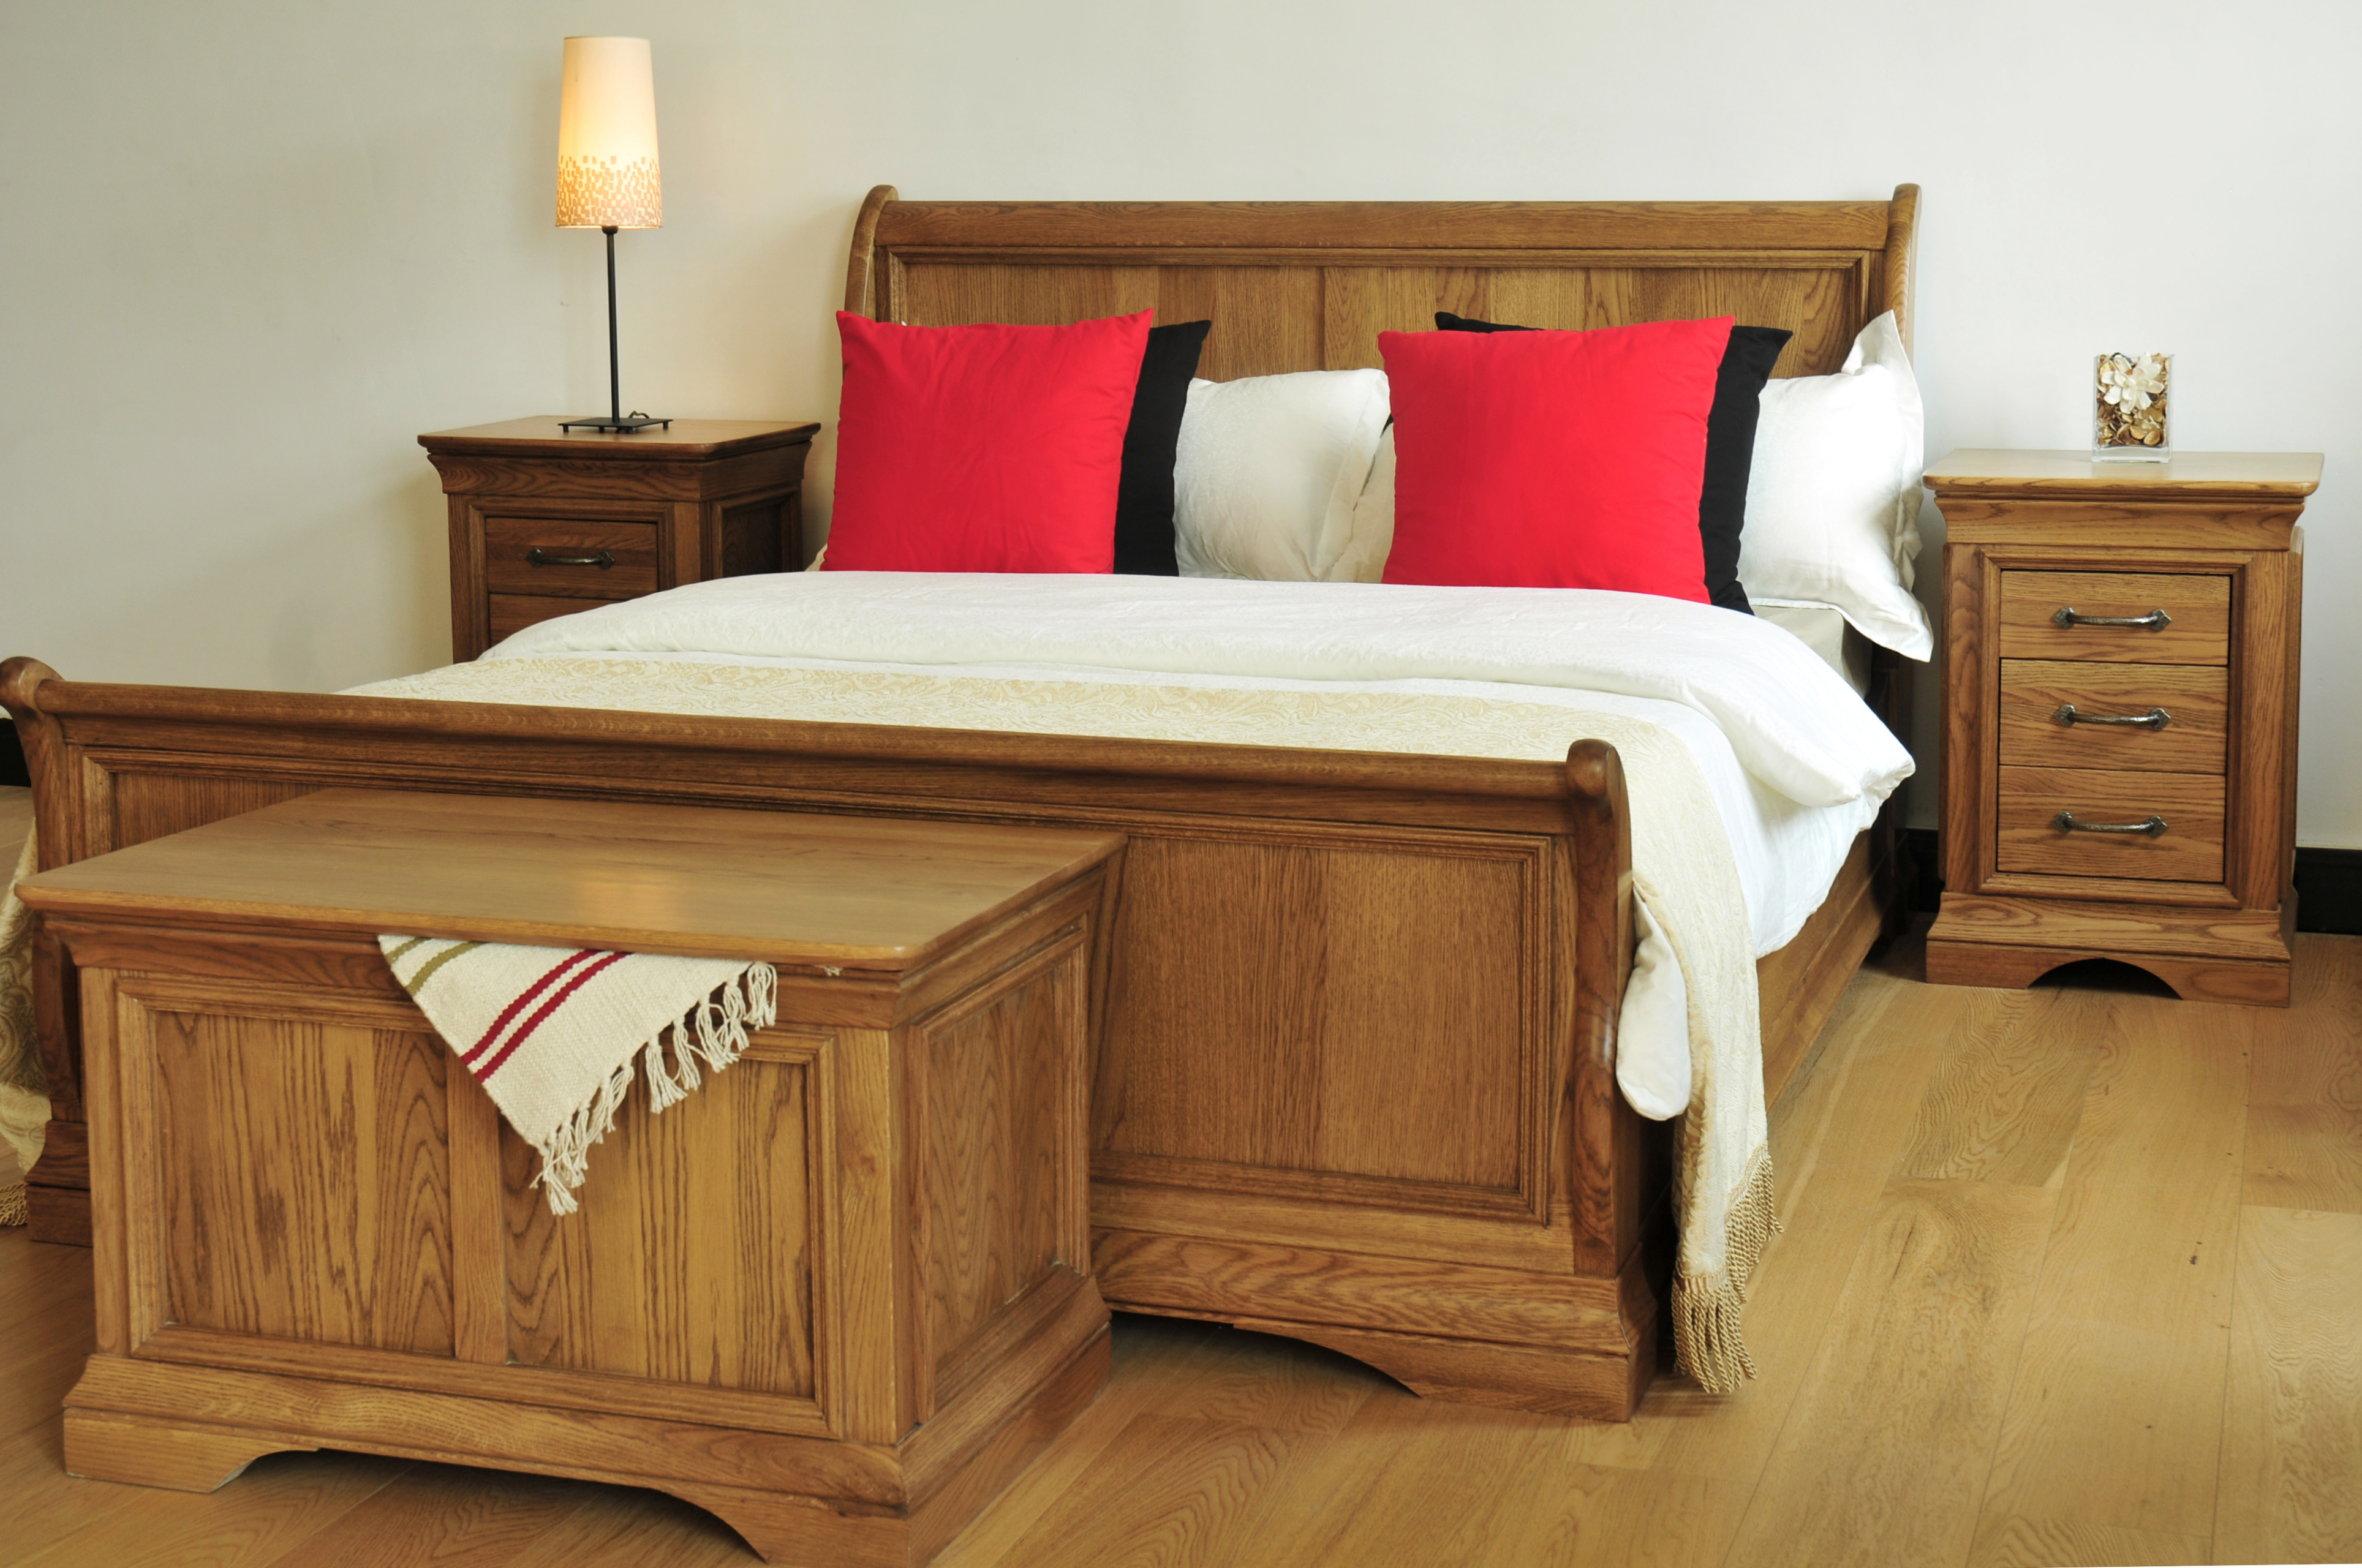 Chateau 5 39 High Foot End Sleigh Bed